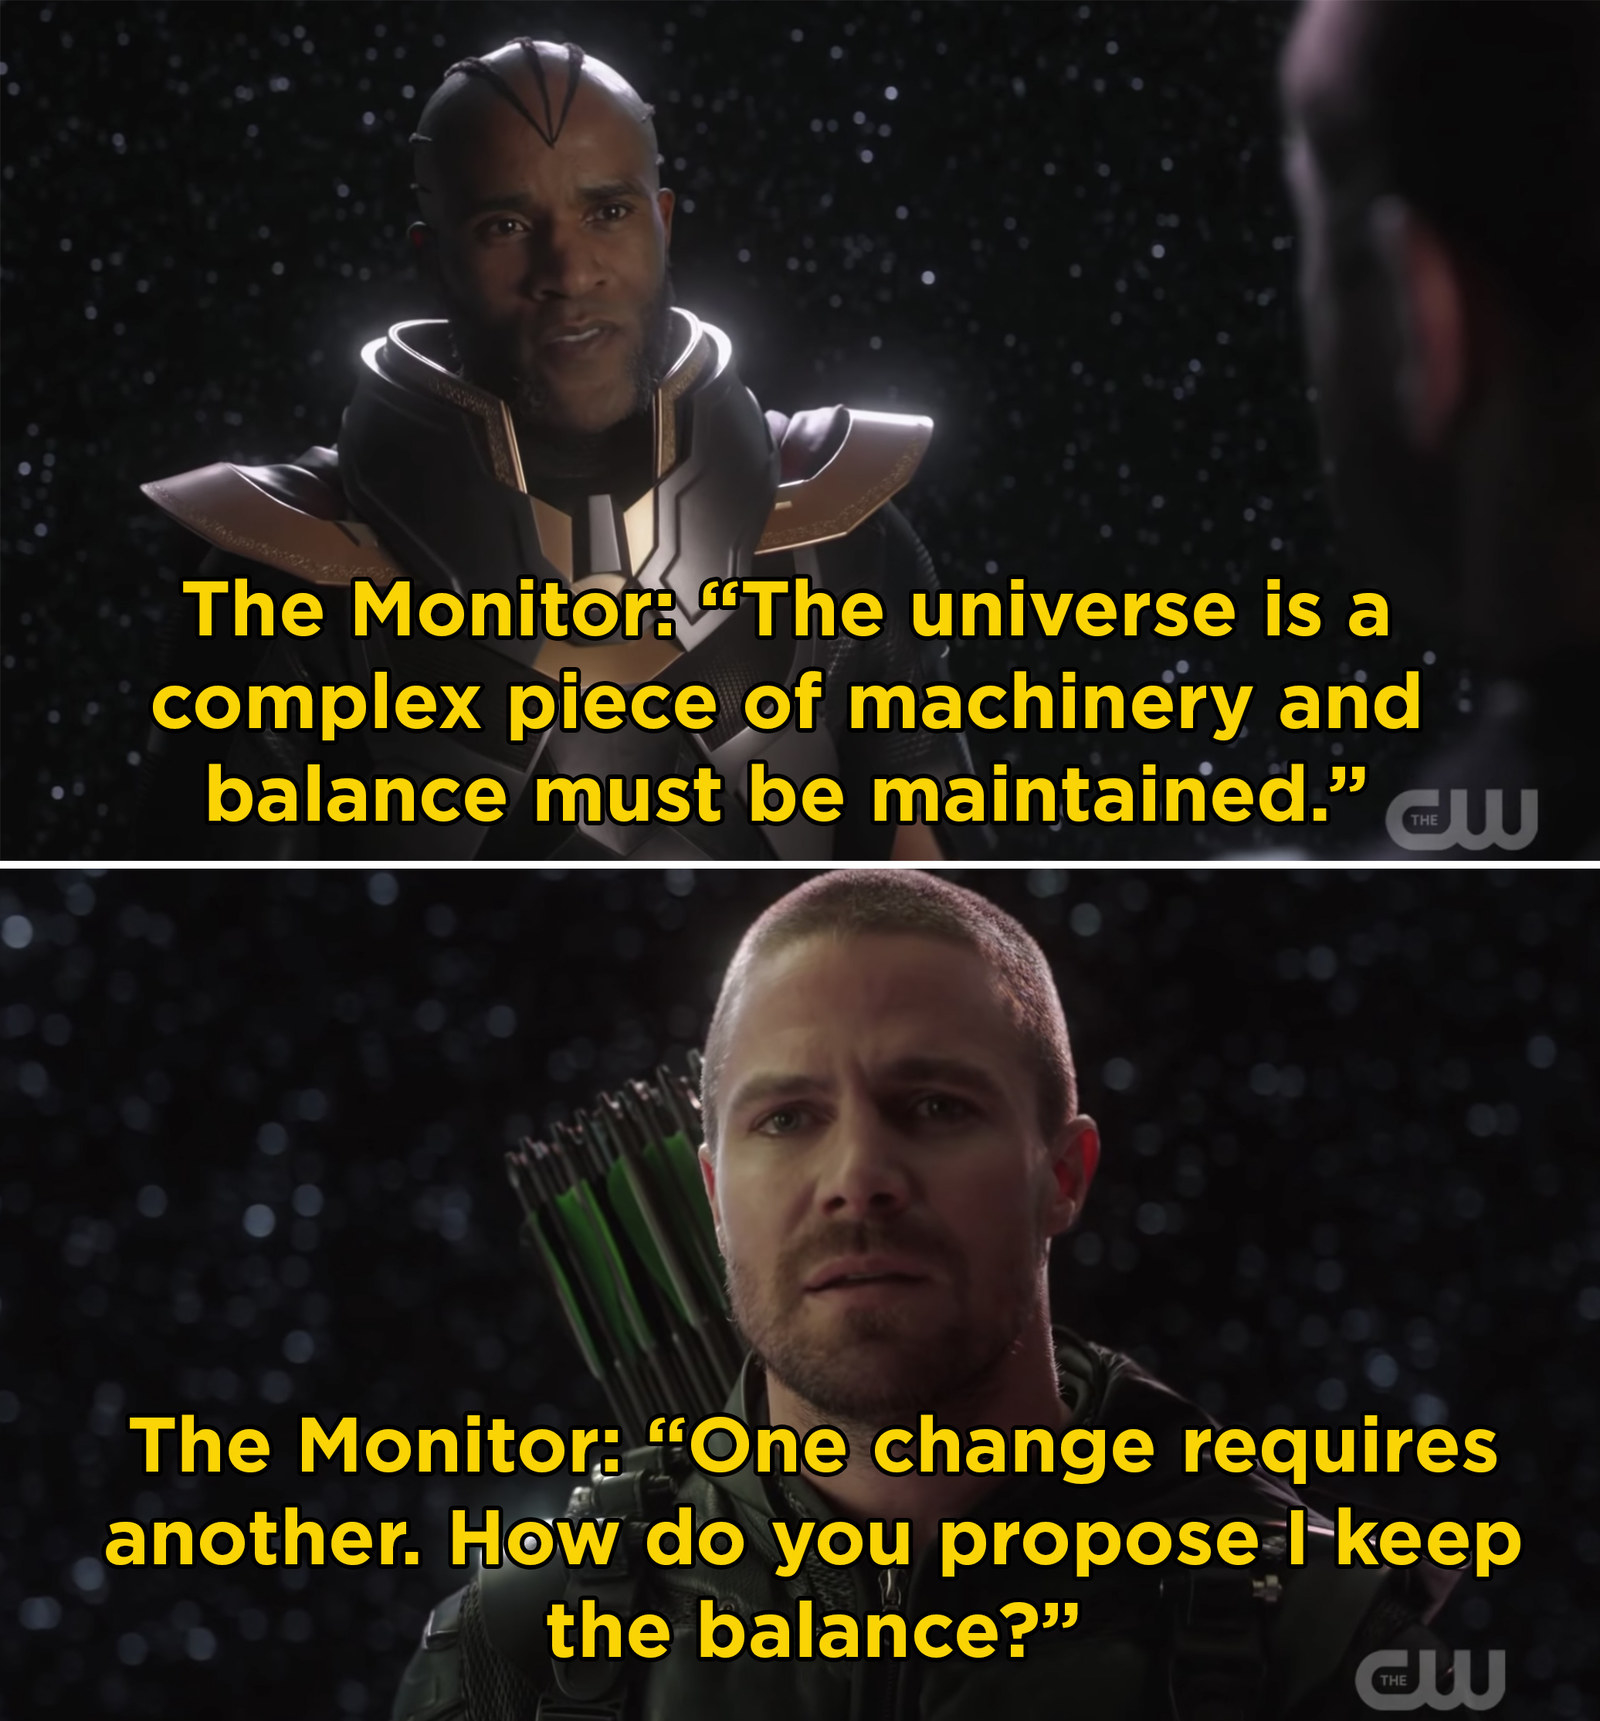 In the last crossover, Oliver met with the Monitor in order to save Barry and Kara from dying. We know that Barry and Kara survive, but it remains a mystery as to what Oliver traded for their safety.